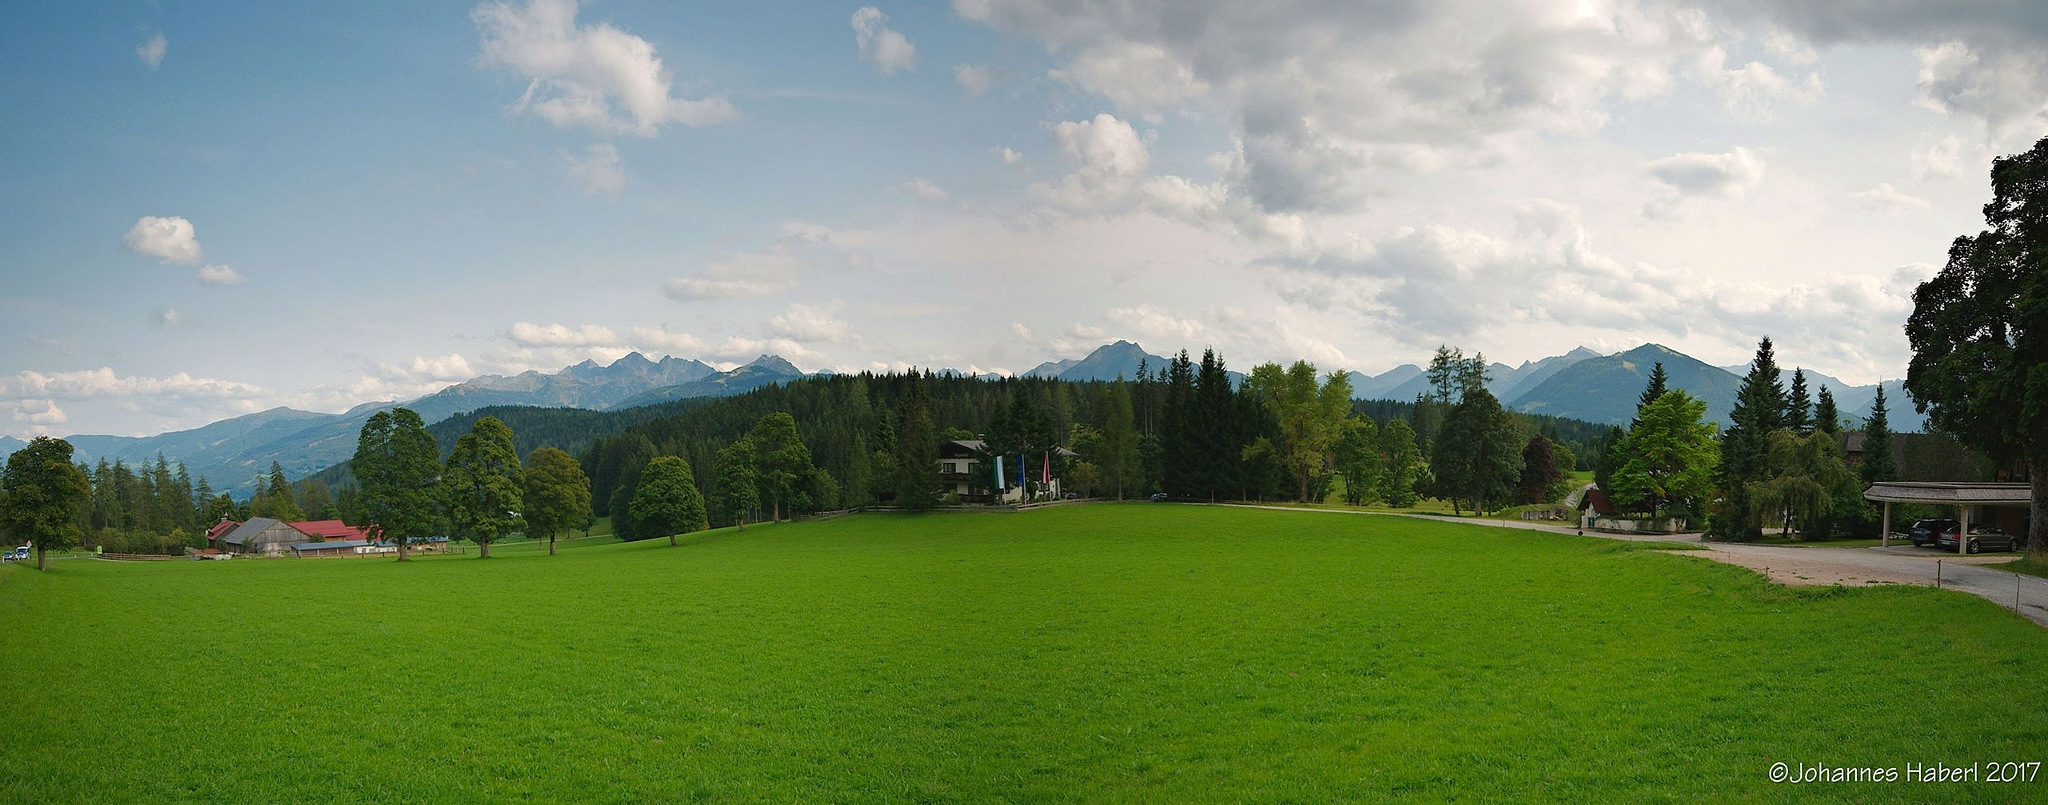 Ramsau - view to the south  by Johannes Haberl